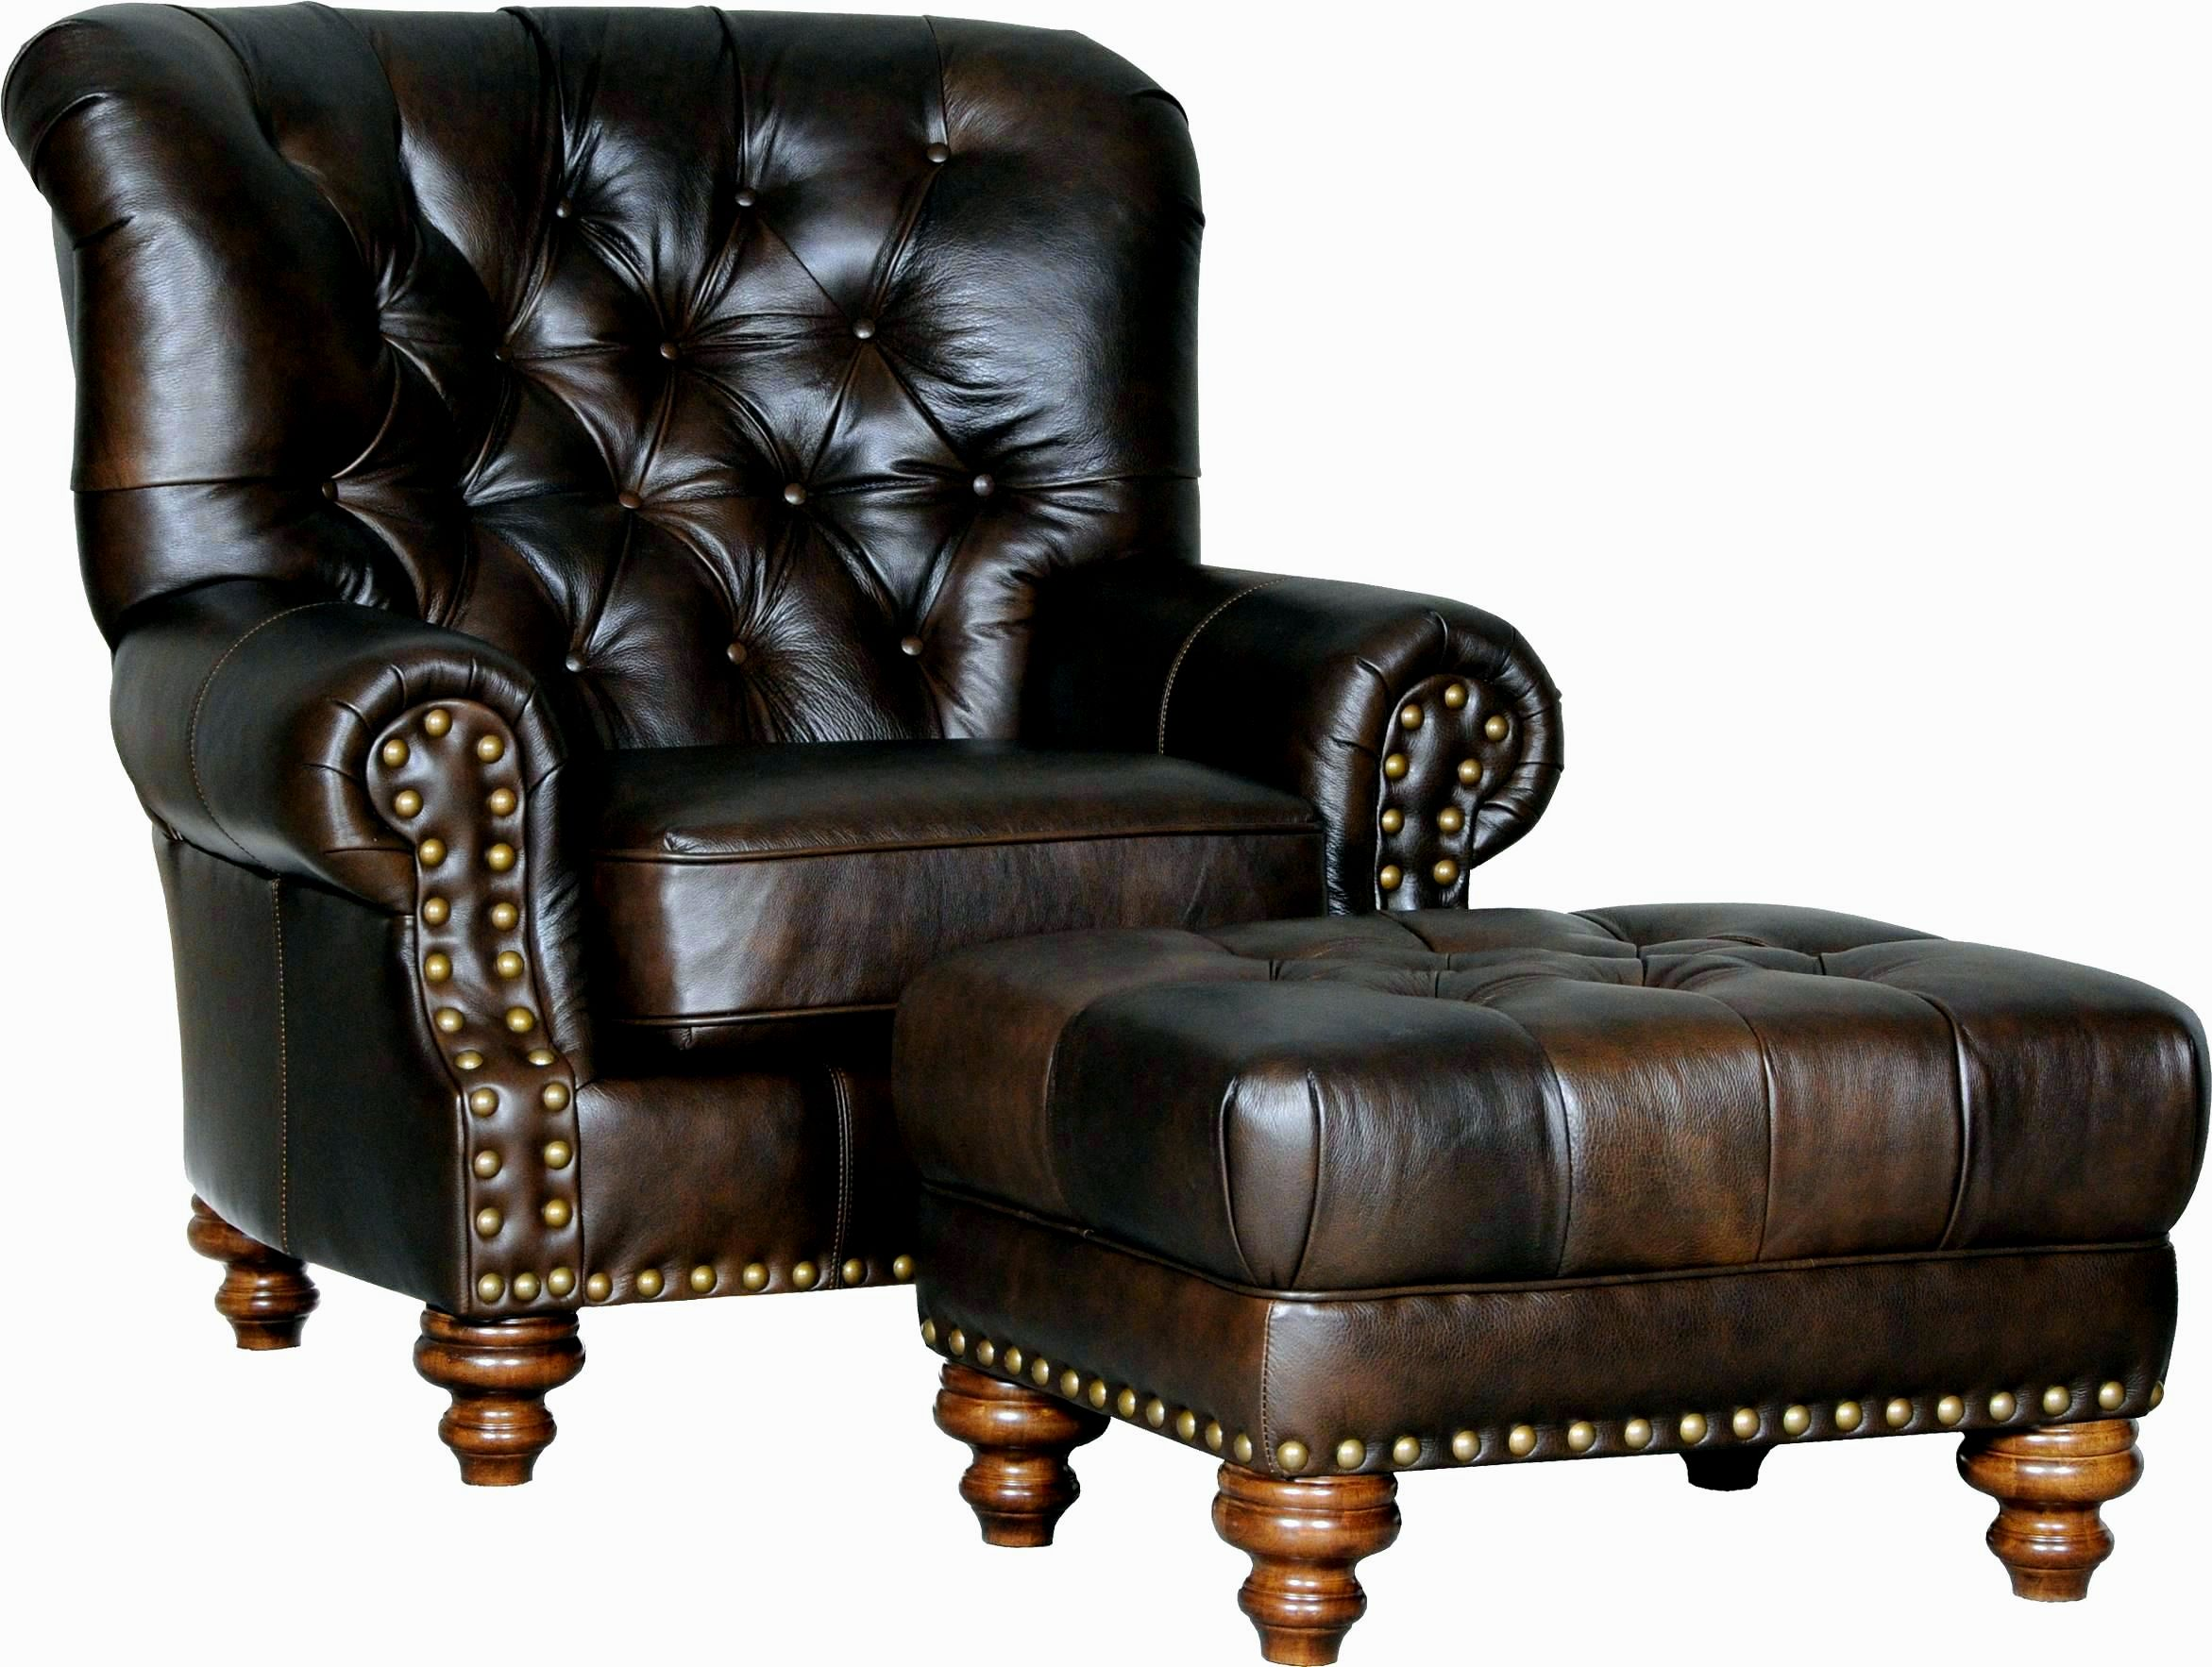 best leather sofa macys wallpaper-New Leather sofa Macys Gallery